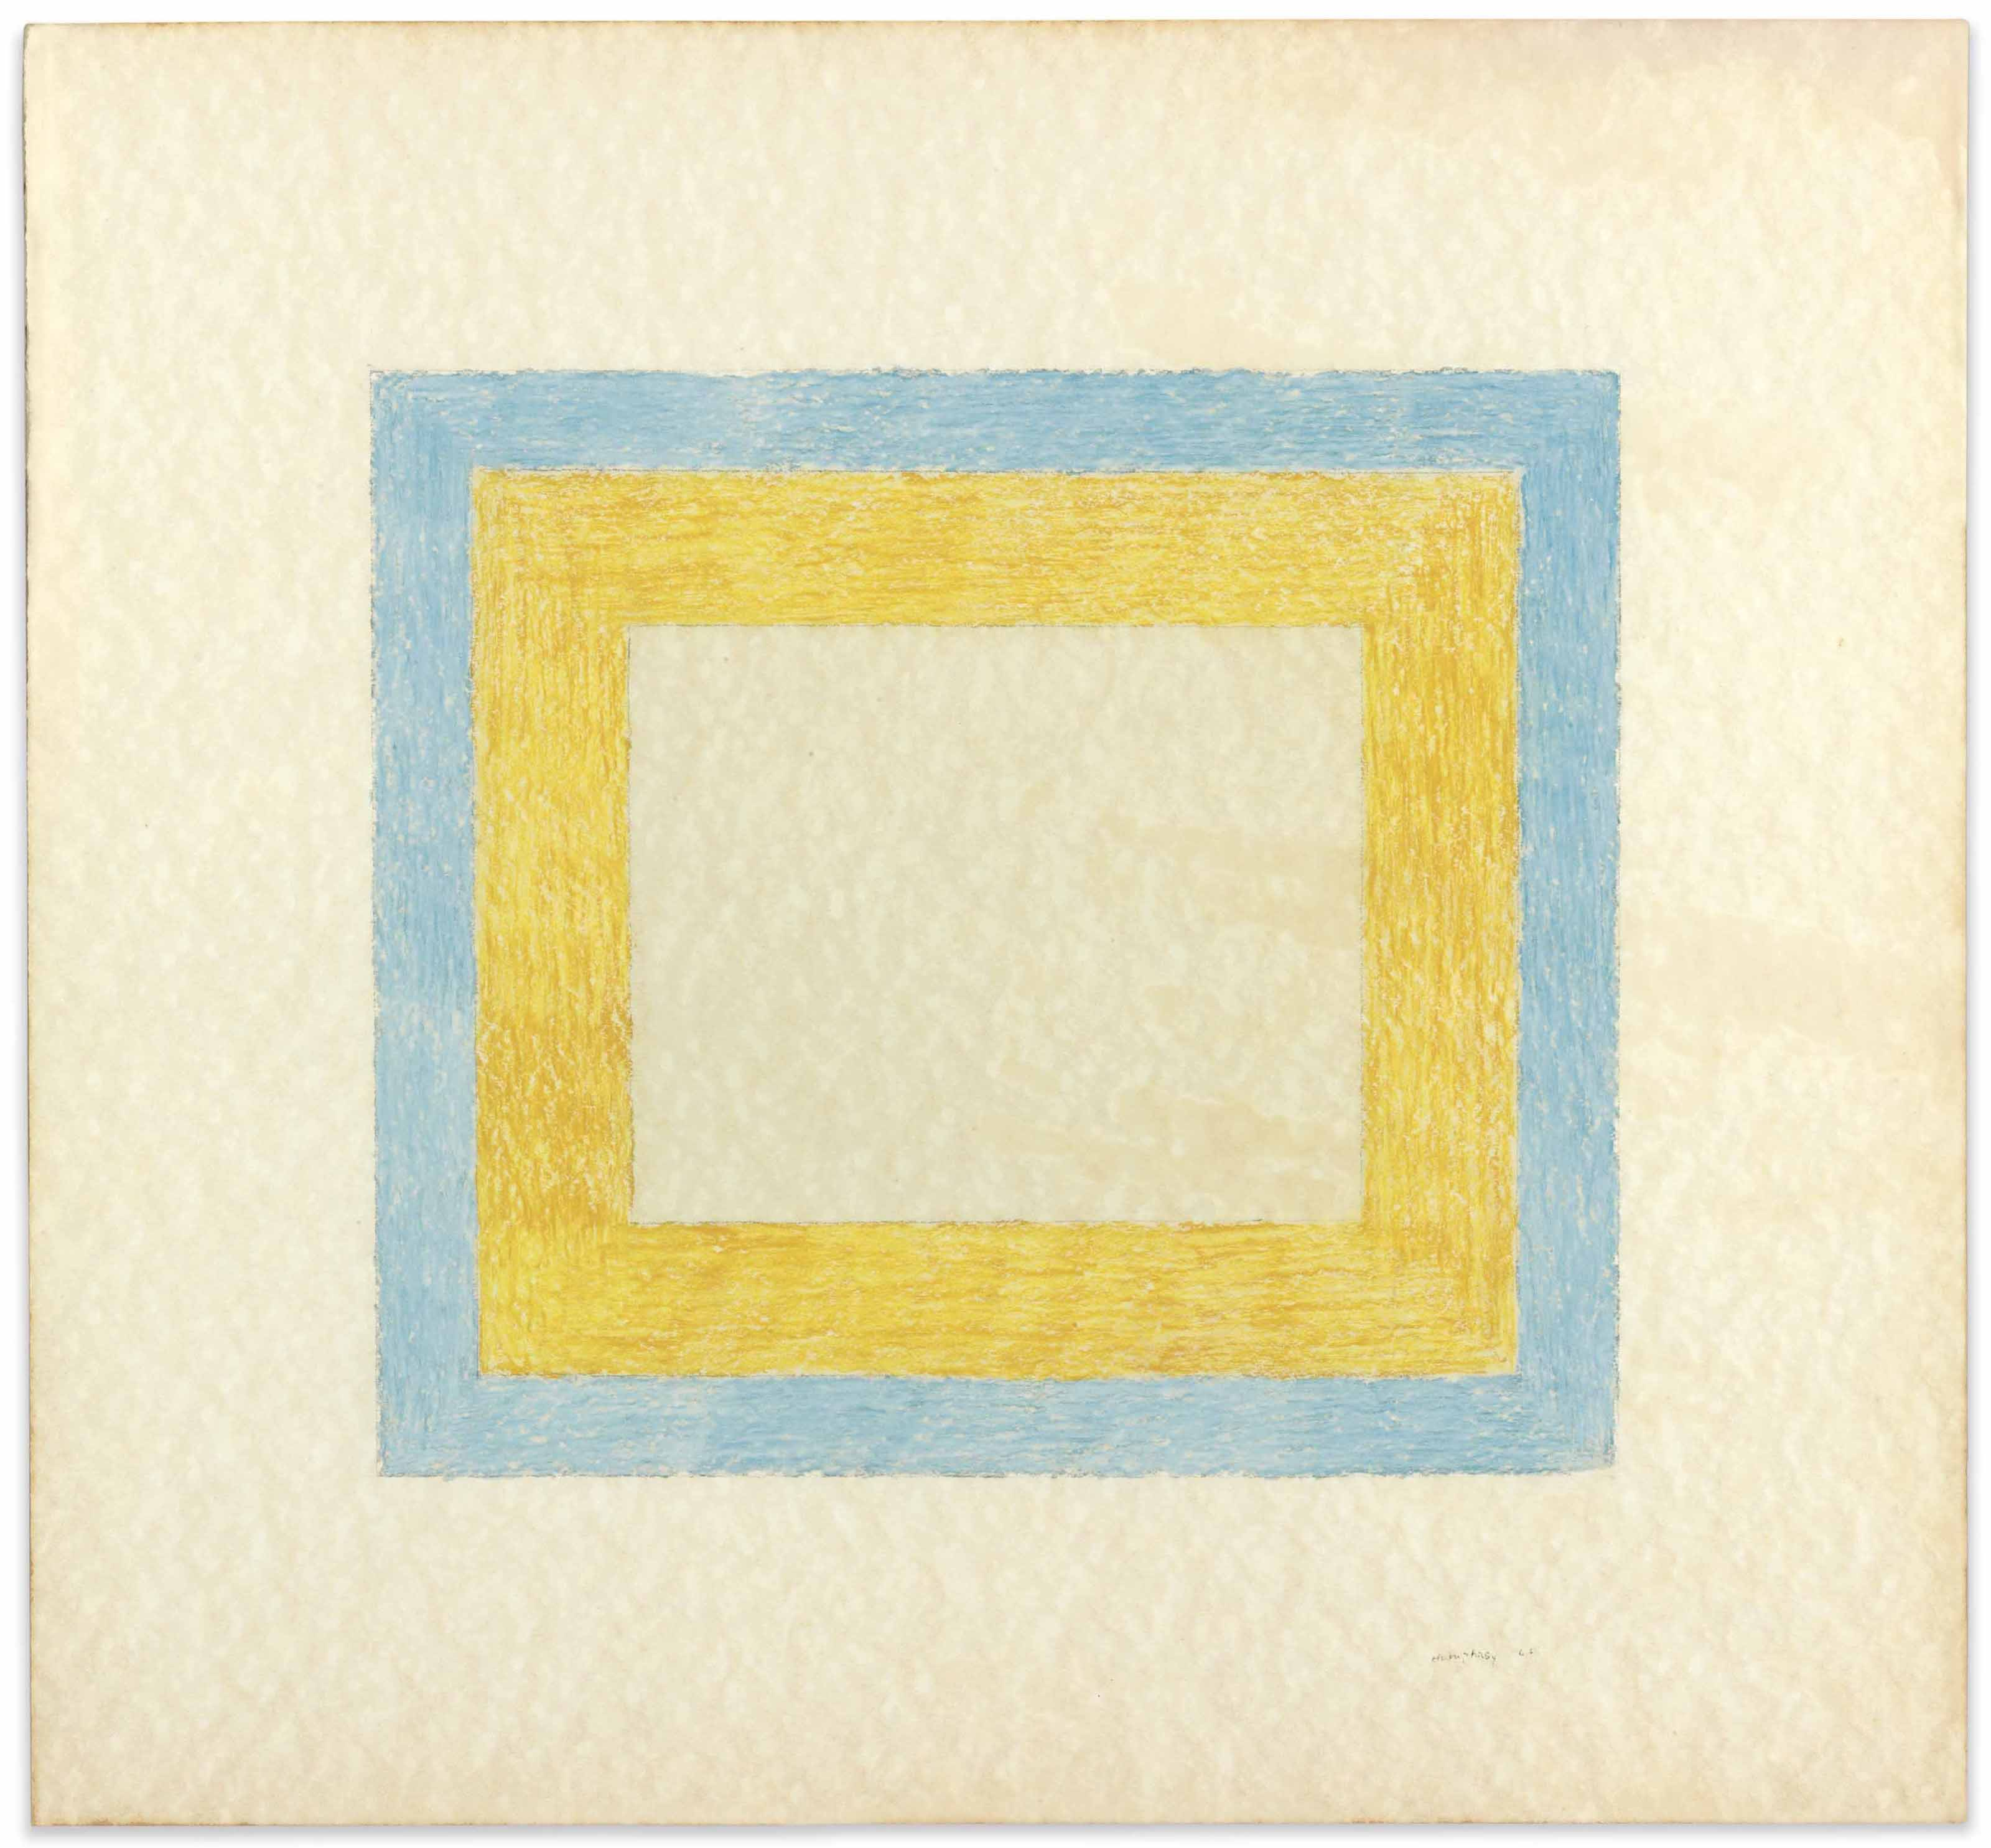 Untitled (Orange and Blue Square)